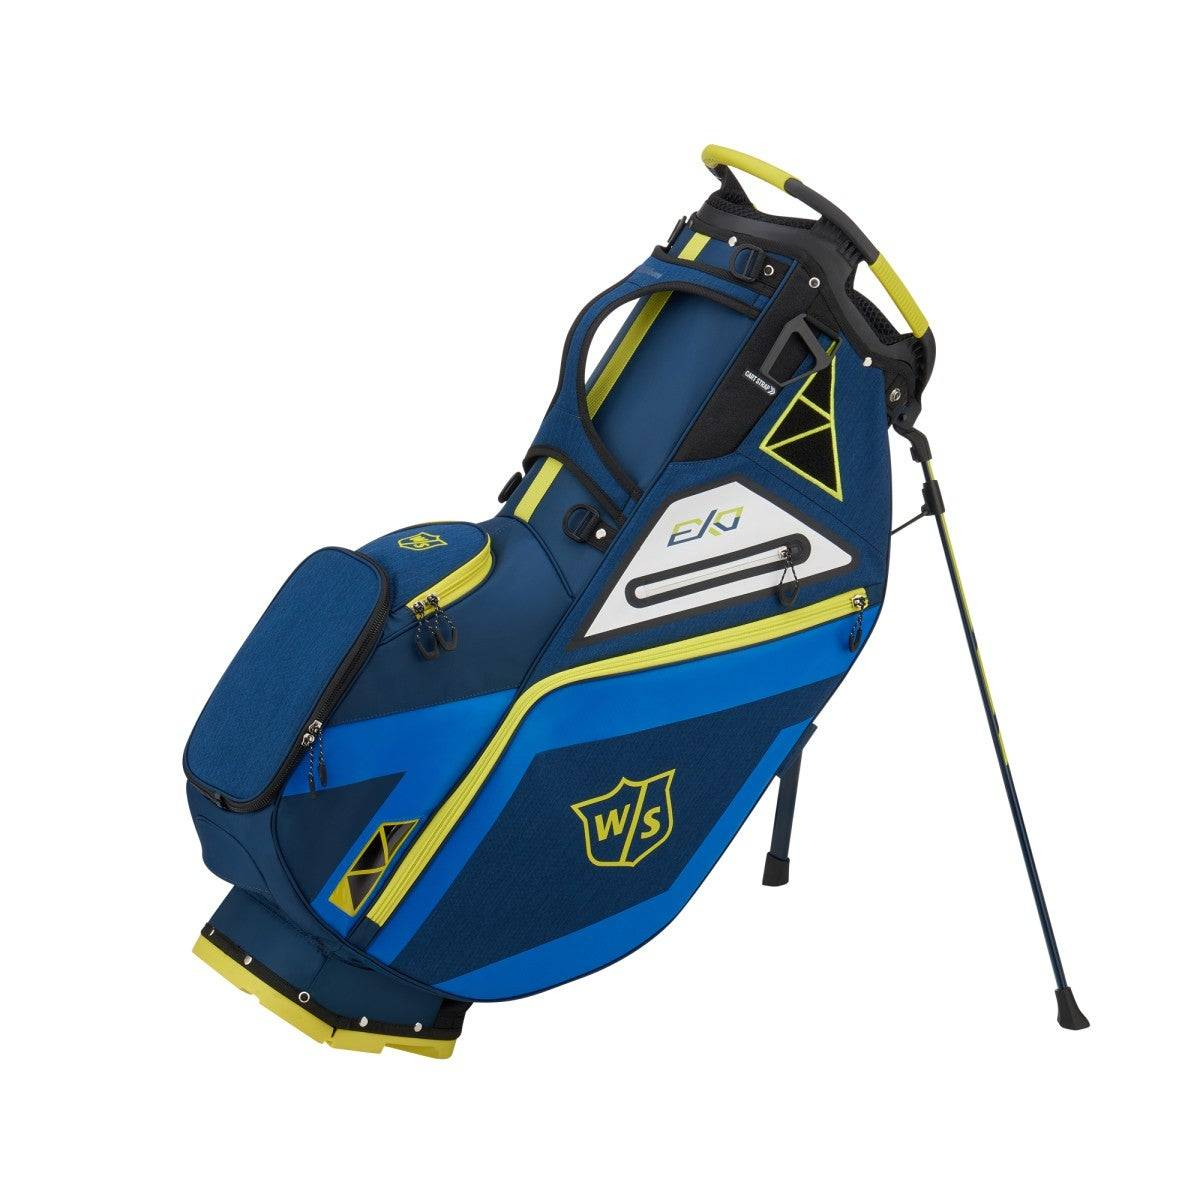 Wilson Exo Stand Bag in Blue / Royal / Yellow  - Unisex - Blue/Royal/Yellow